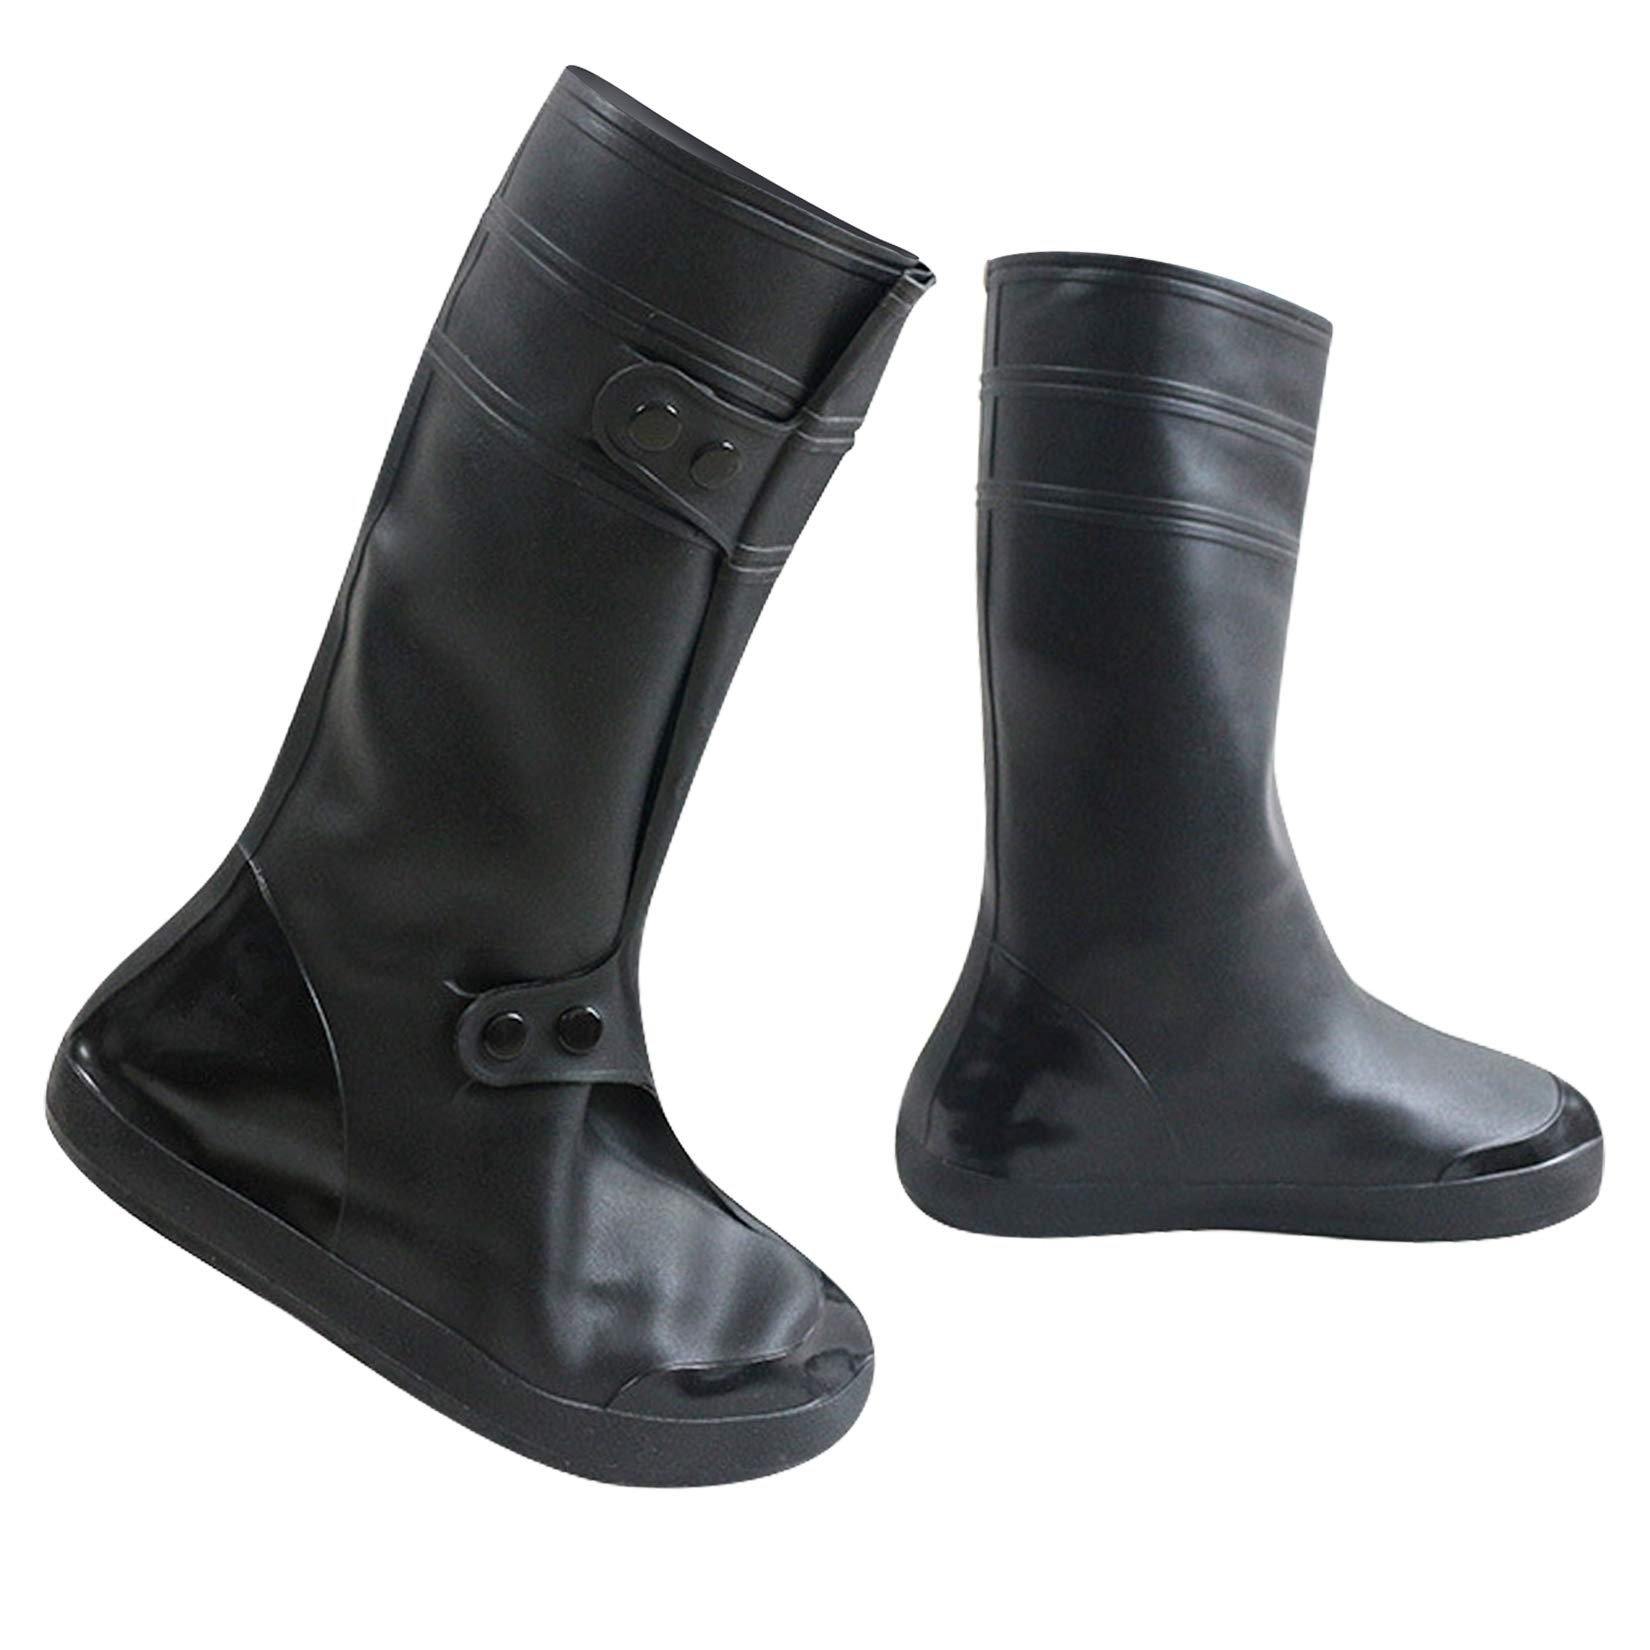 ARUNNERS Black Snow Rain Boots Shoes Covers Galoshes Overshoes for Men - L, High